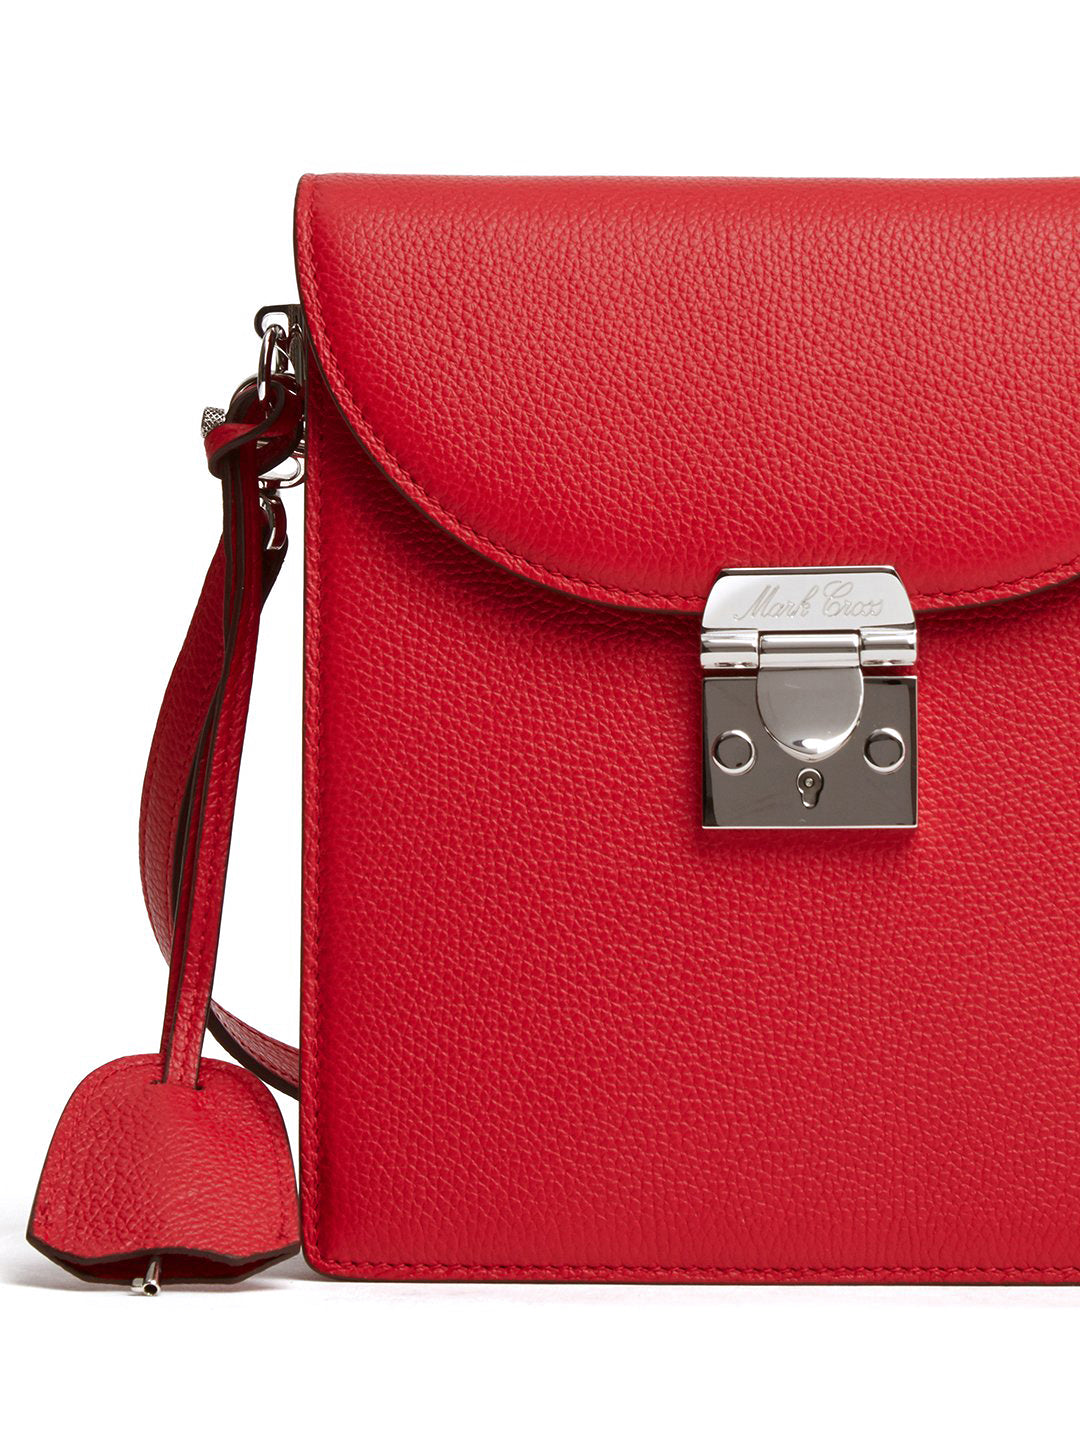 Mark Cross Patrick Leather Crossbody Bag Tumbled Grain MC Red Detail